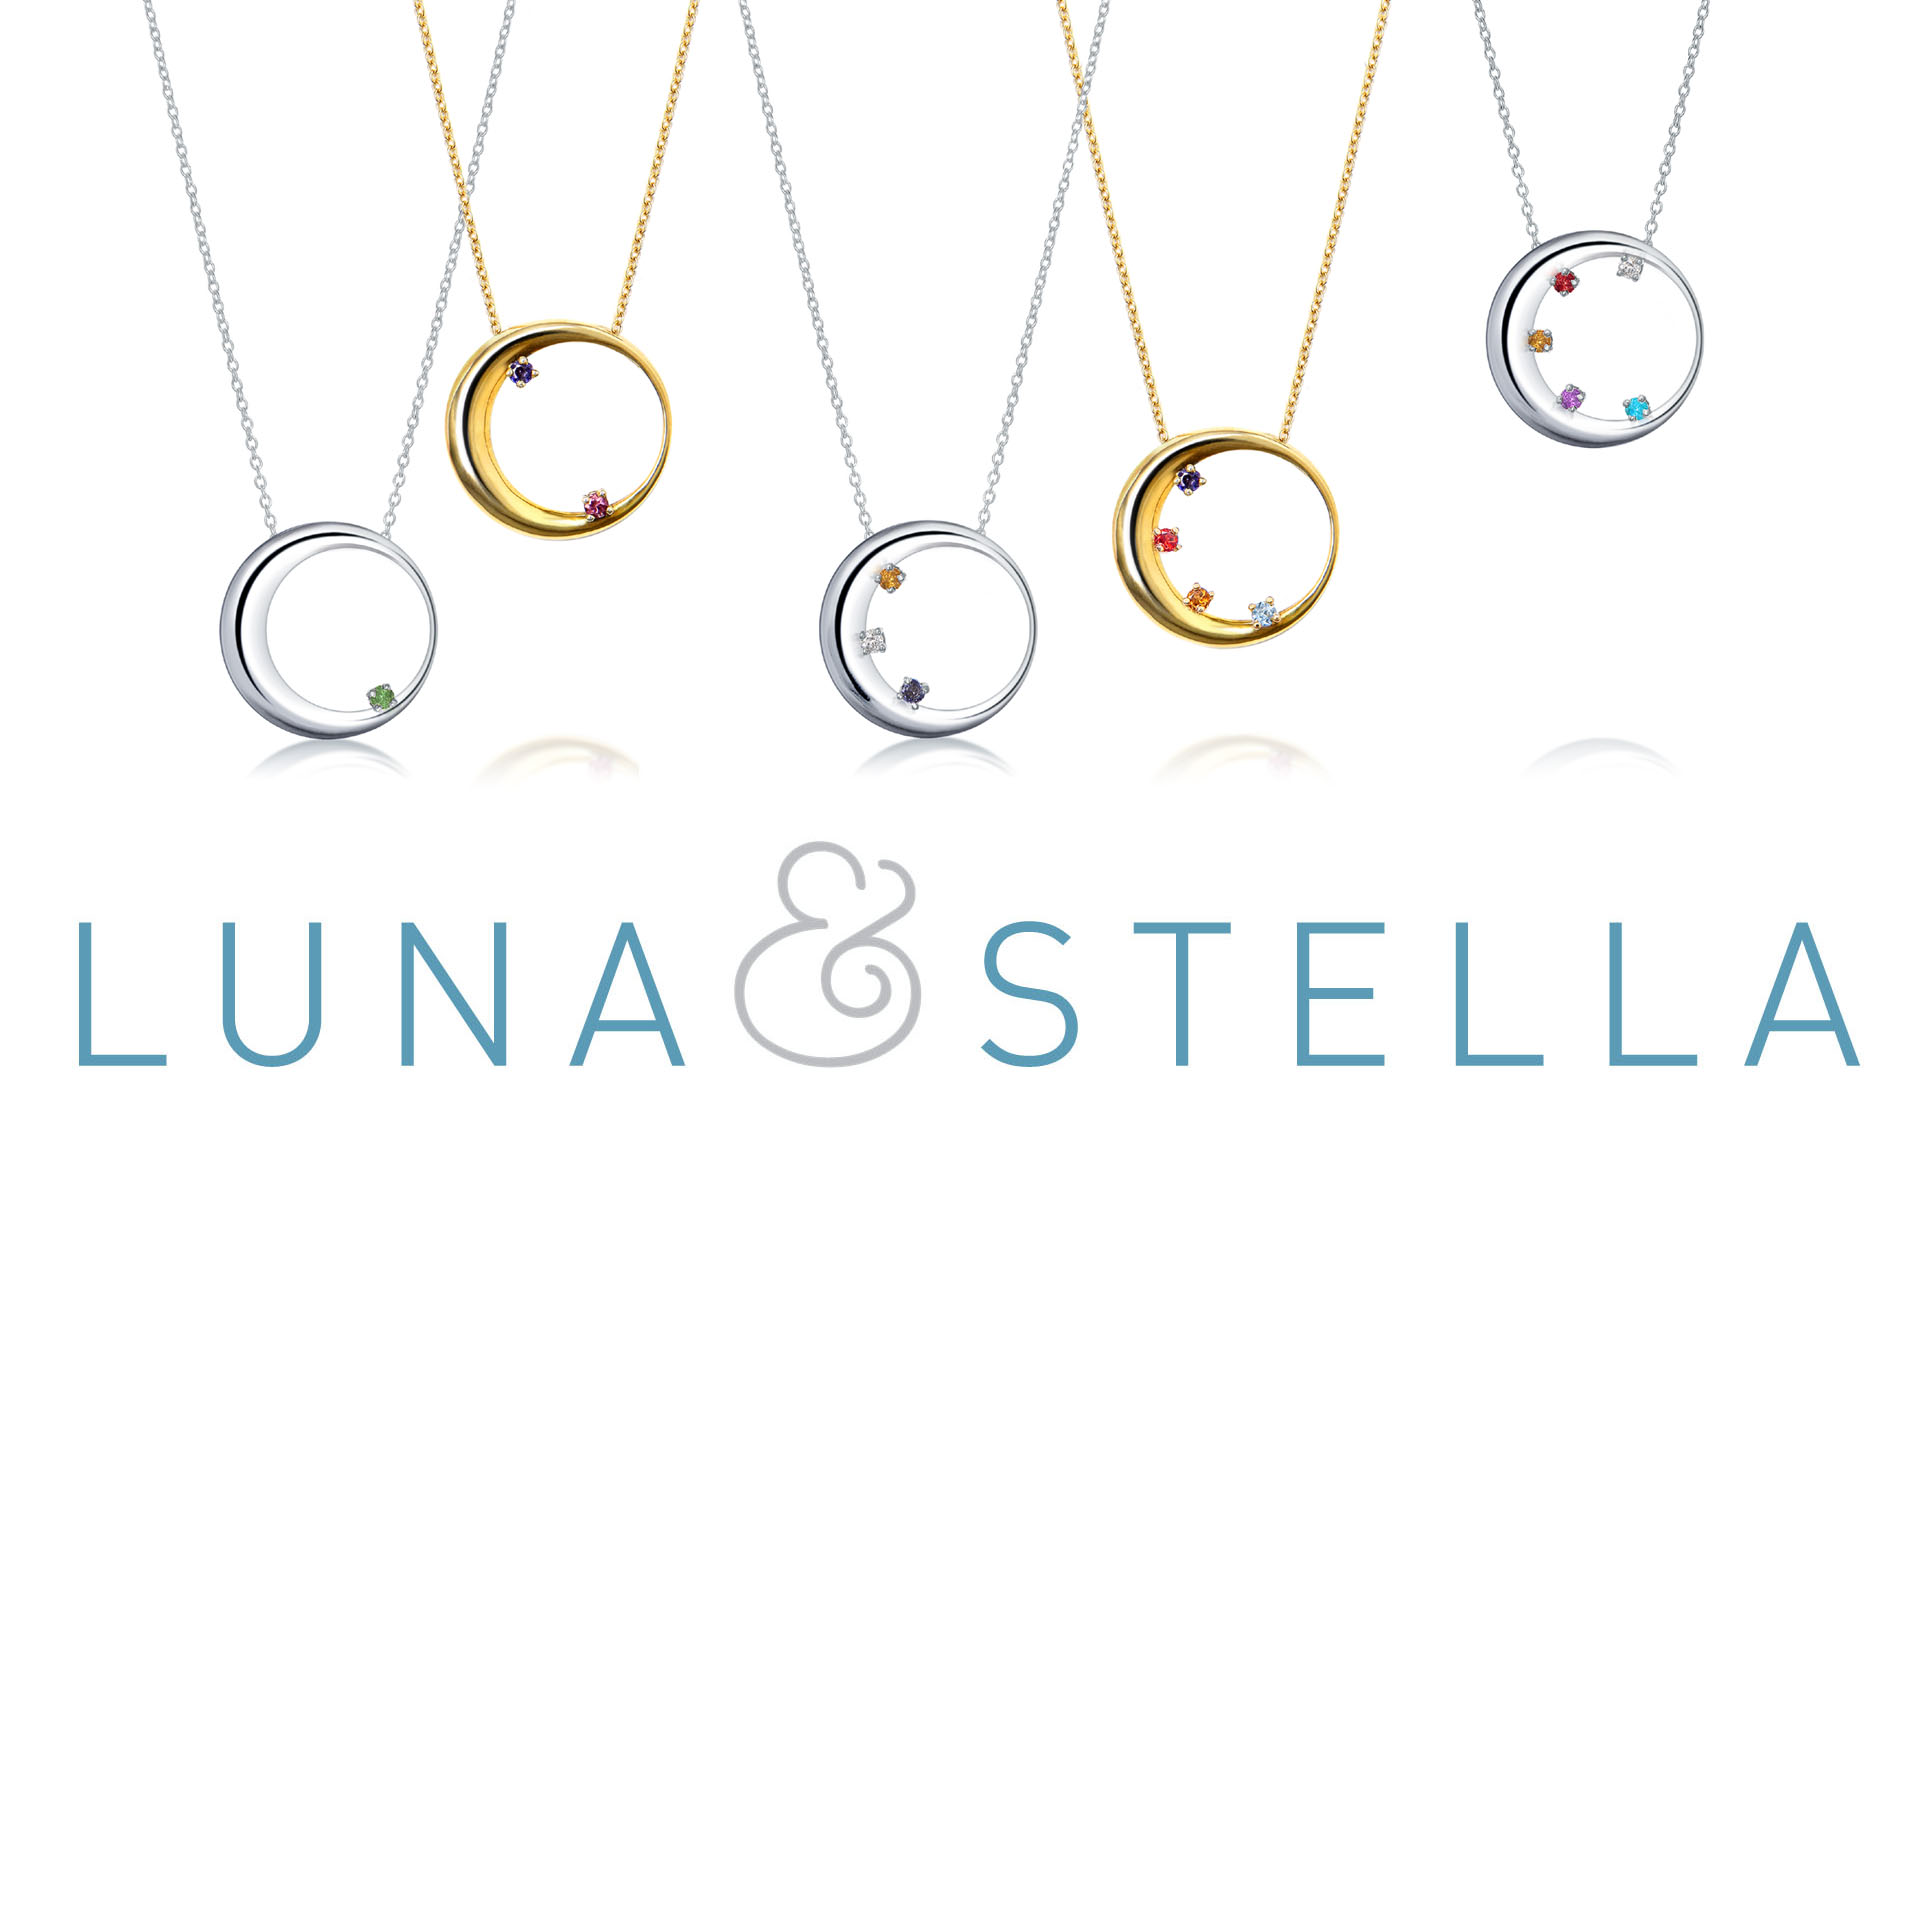 Luna & Stella Creates Meaningful Jewelry for Mothers